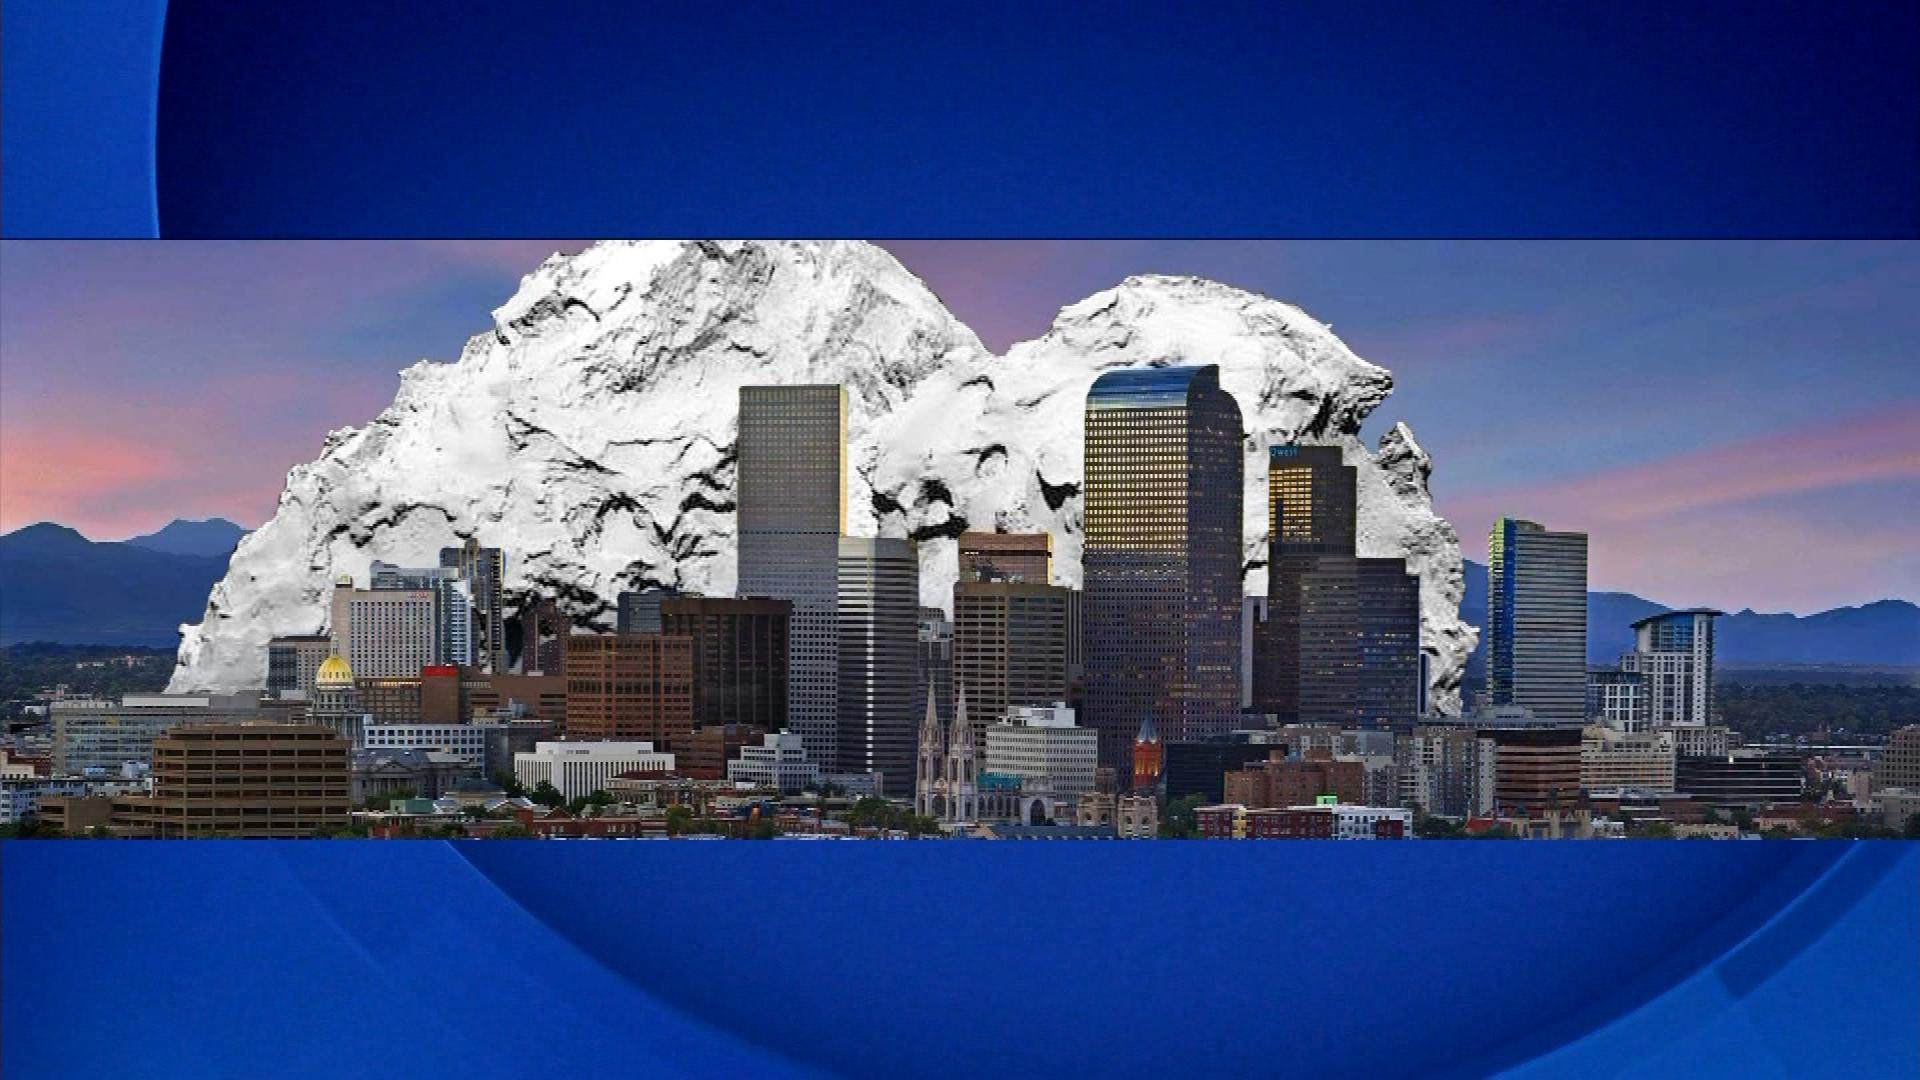 Using the Denver skyline as a reference, here's how big the comet is. (credit: CBS)